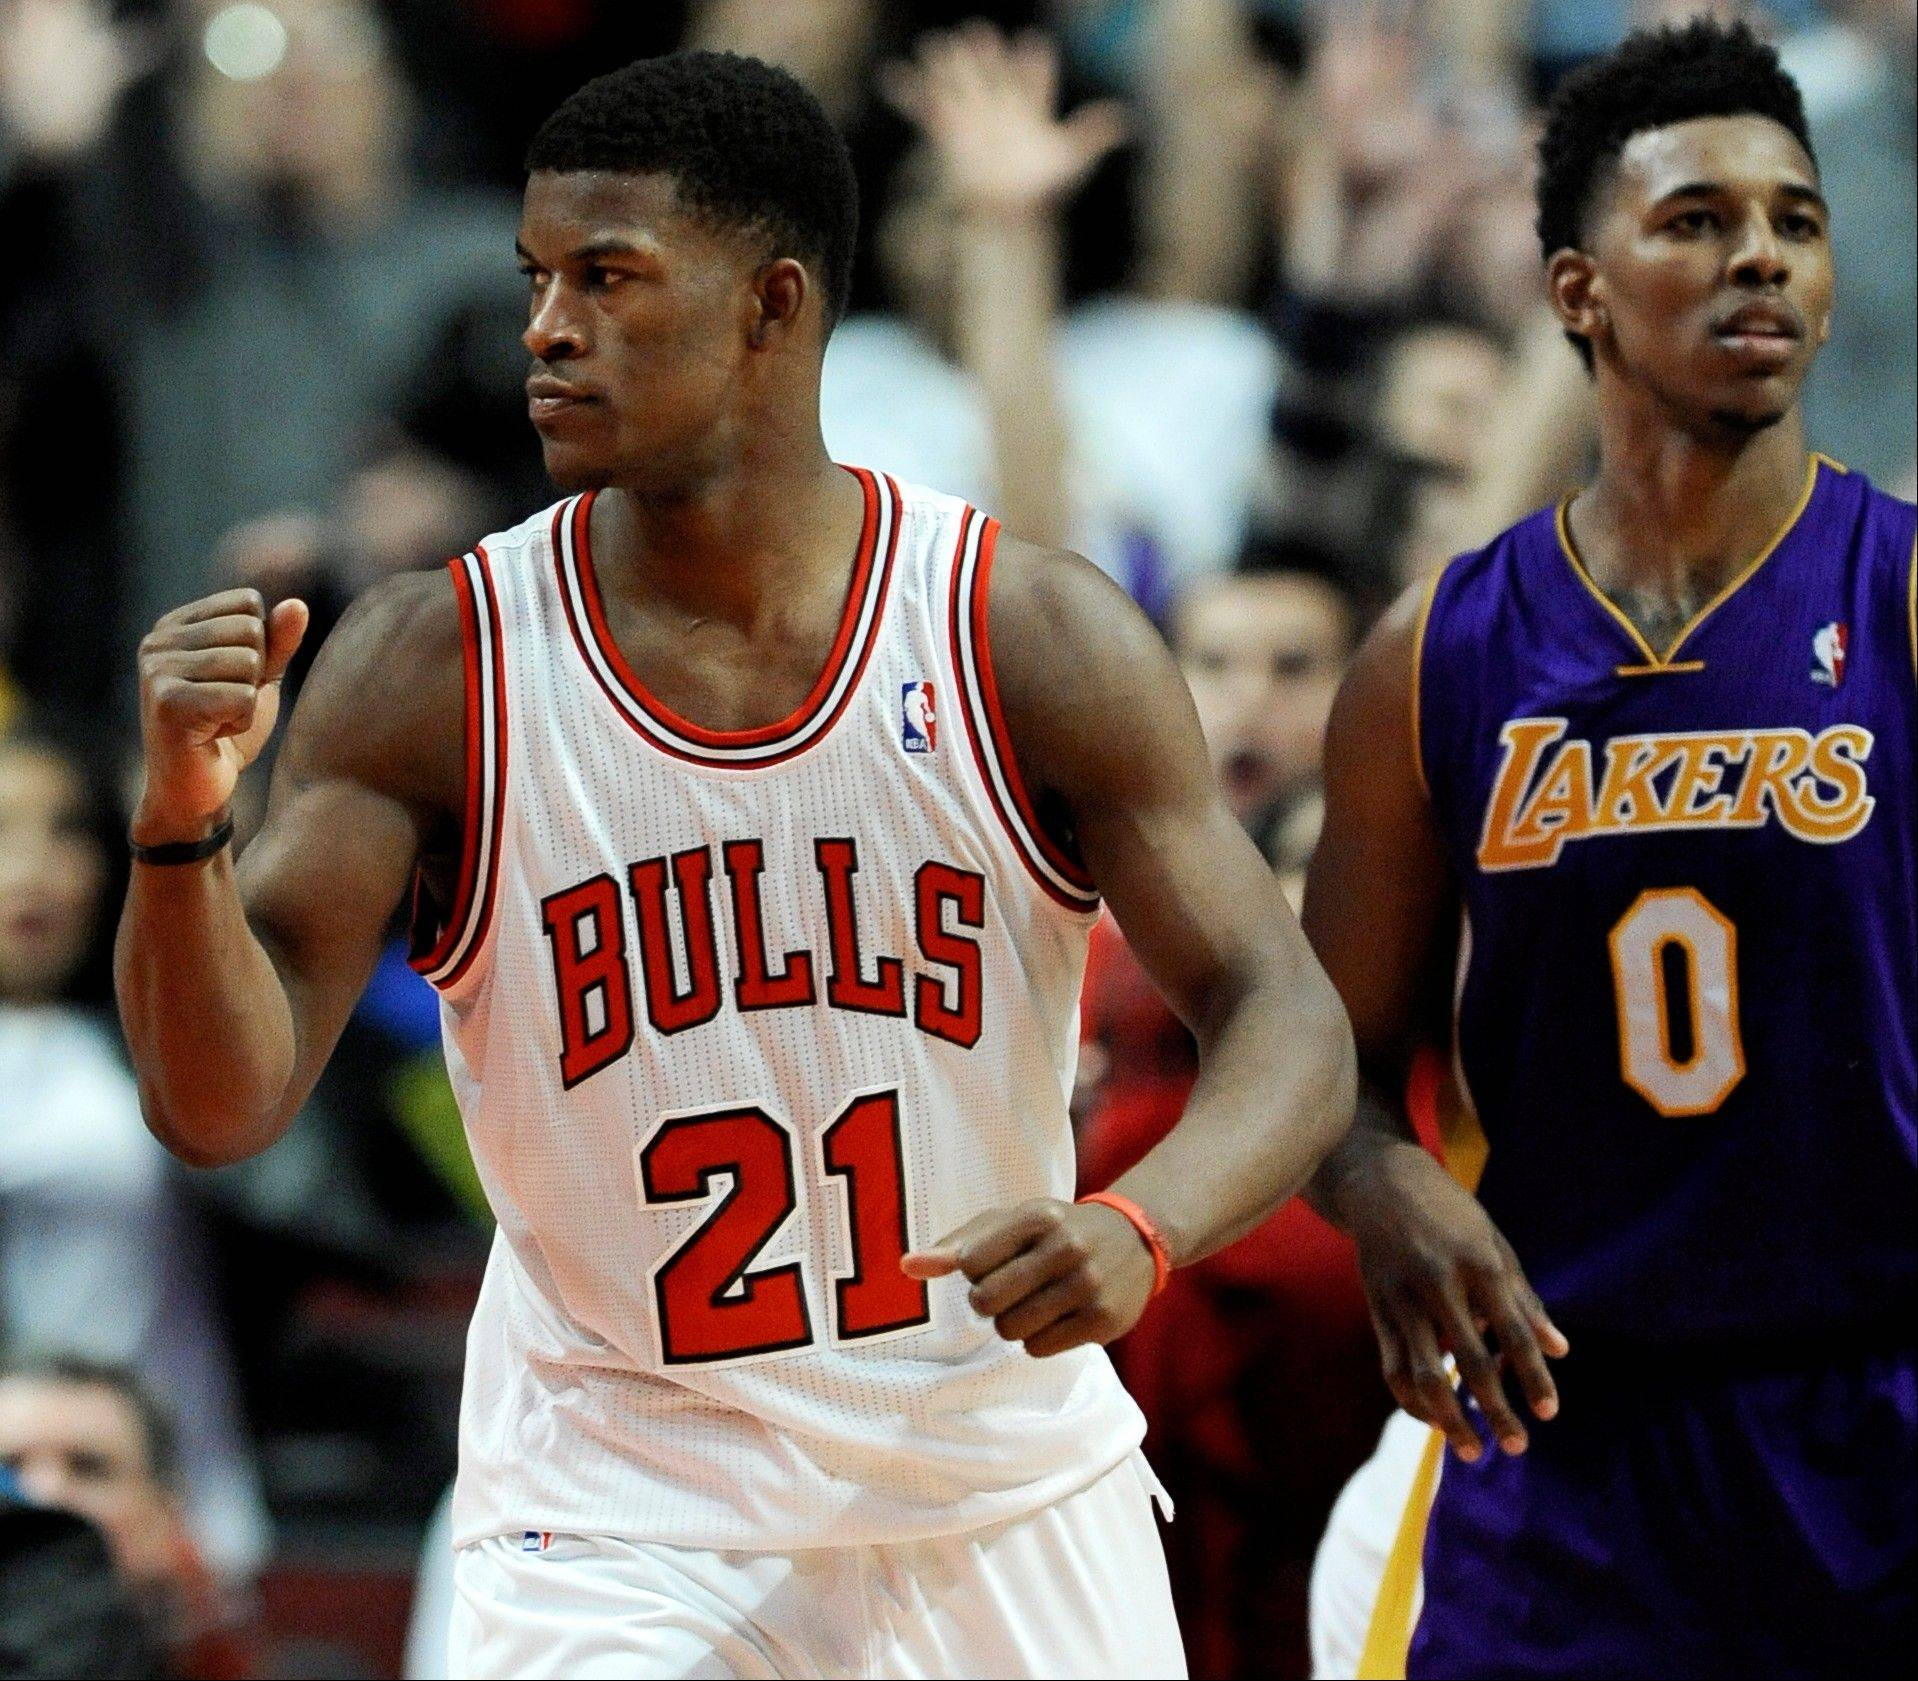 The Bulls' Jimmy Butler celebrates while Los Angeles Lakers' Nick Young looks on after Taj Gibson made the game-winning shot in overtime to defeat the Lakers 102-100 during an NBA basketball game in Chicago, Monday, Jan. 20, 2014.